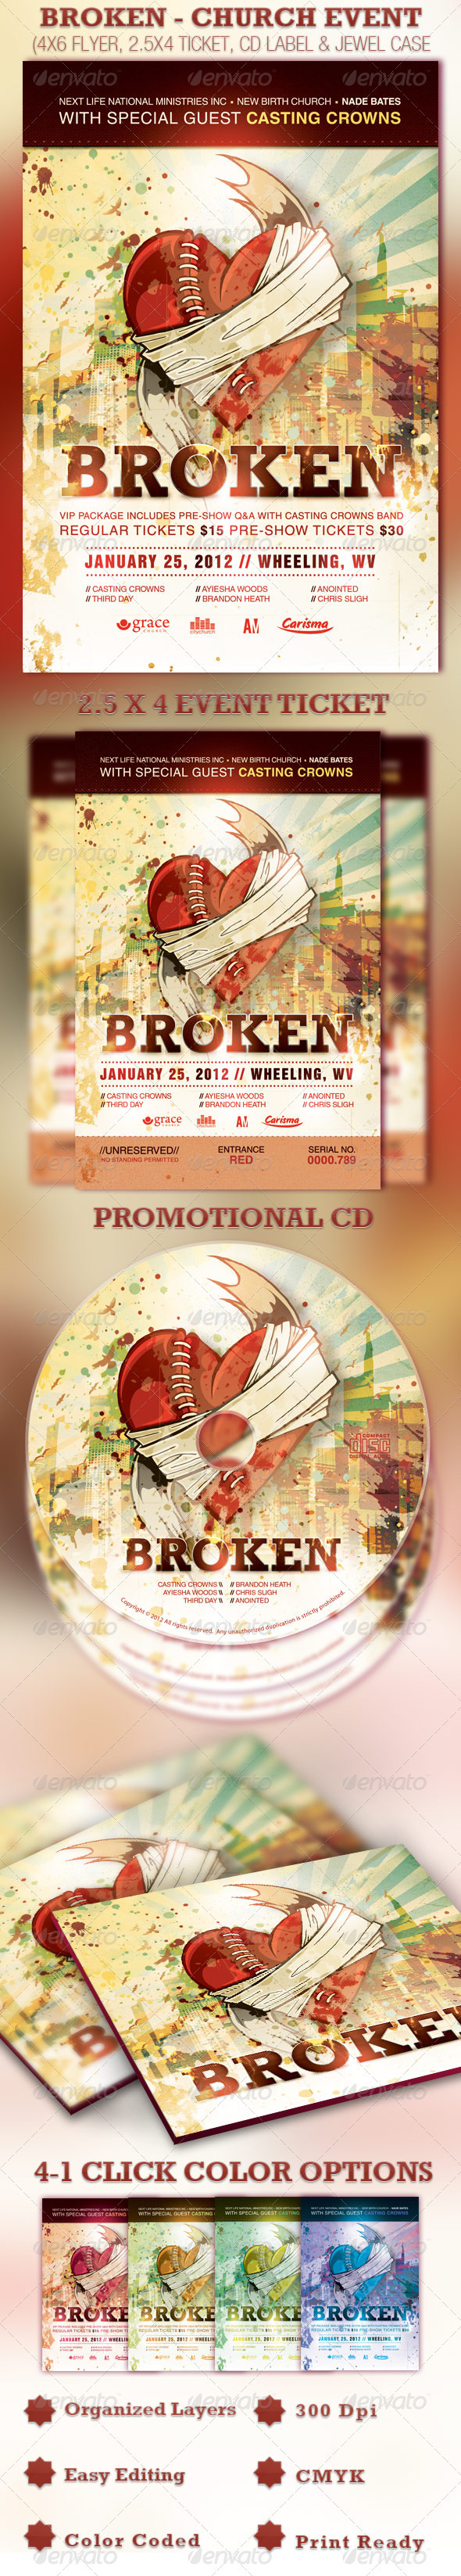 Broken Church Event Flyer, Ticket and CD Template - Church Flyers